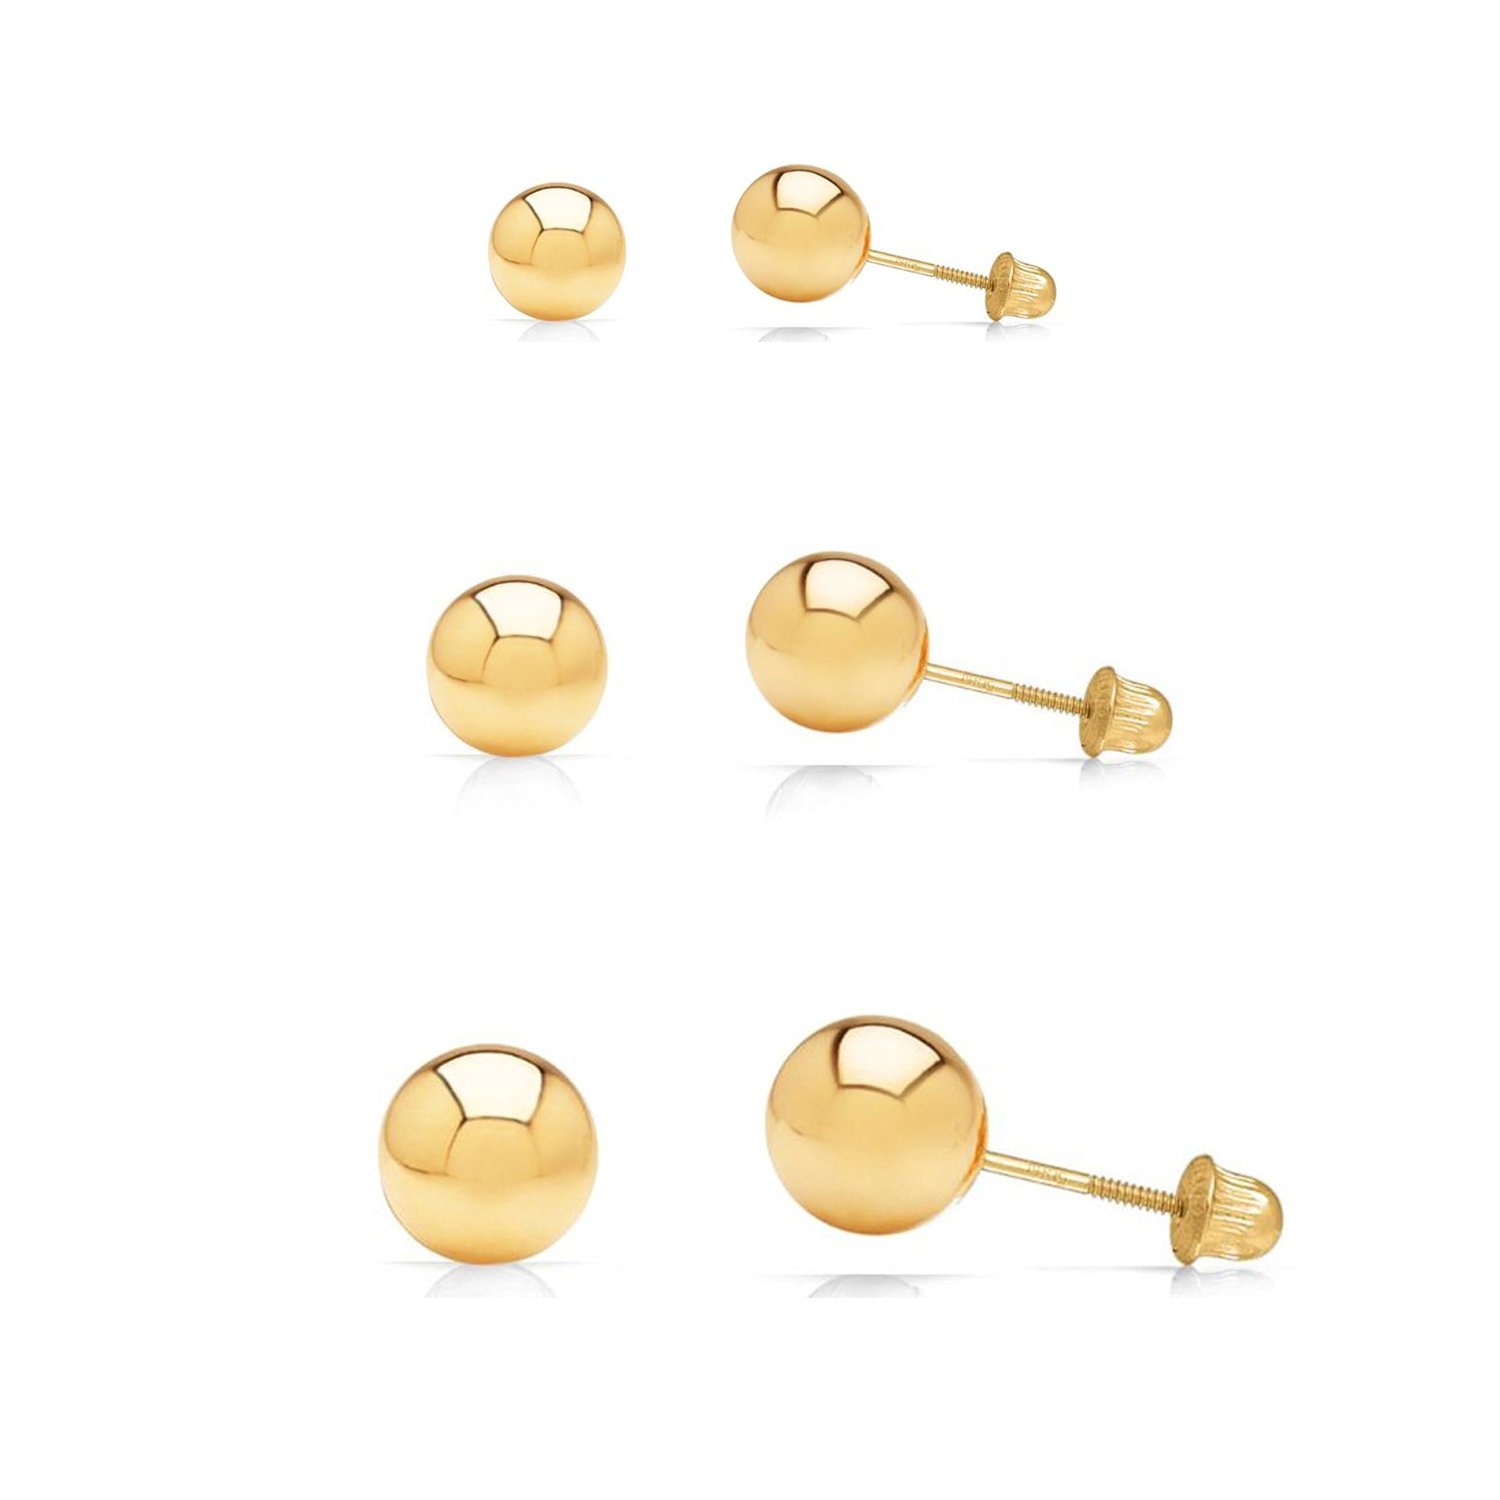 3 Pair Set 14k Yellow Gold Ball Stud Earrings 3mm, 4mm, 5mm with Secure Screw-Backs